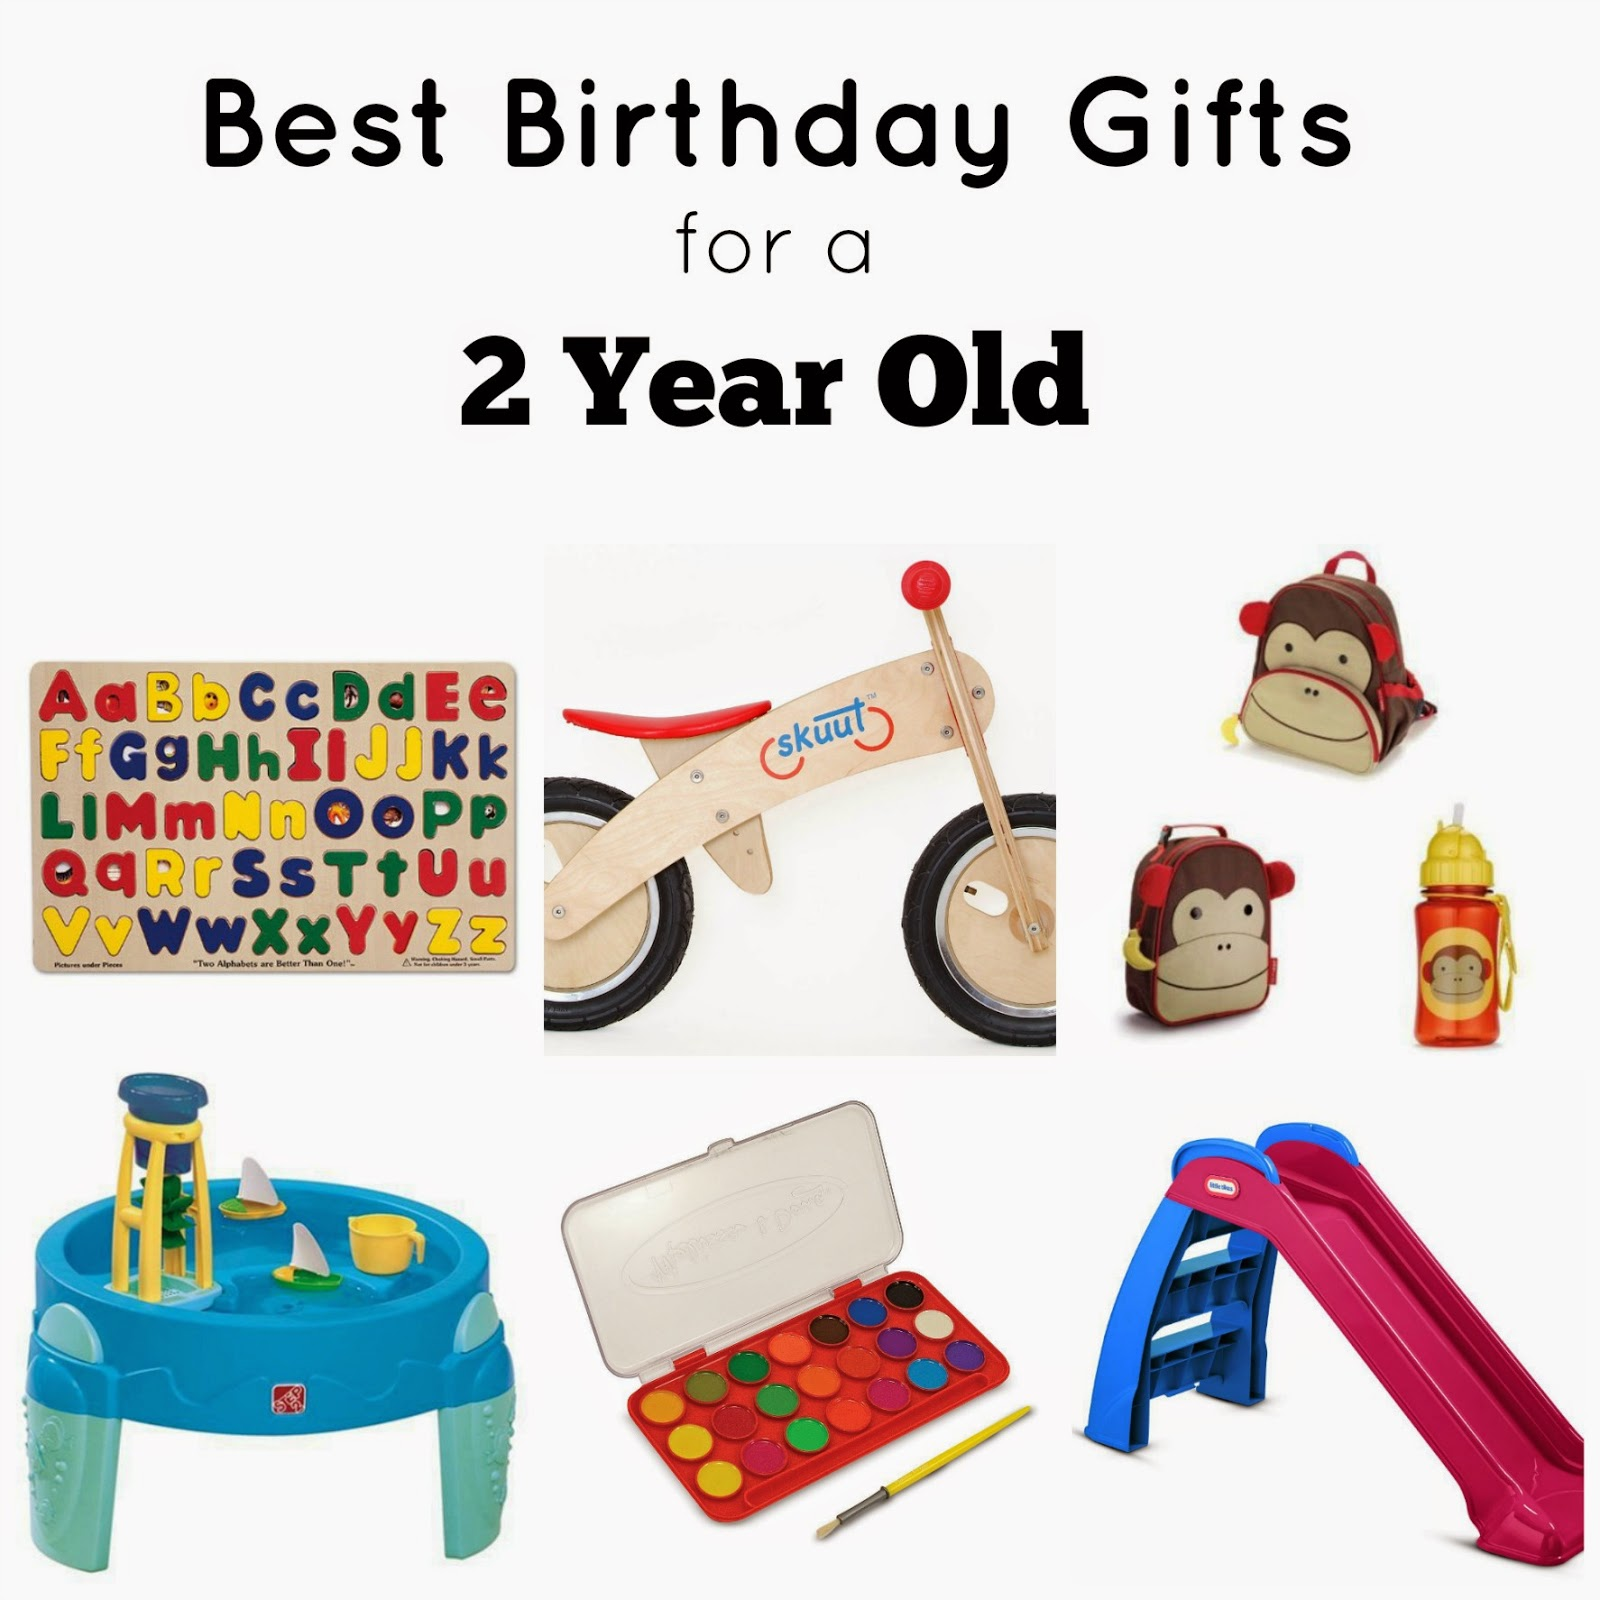 The Best Of Birthday Gift for 2 Year Old Images